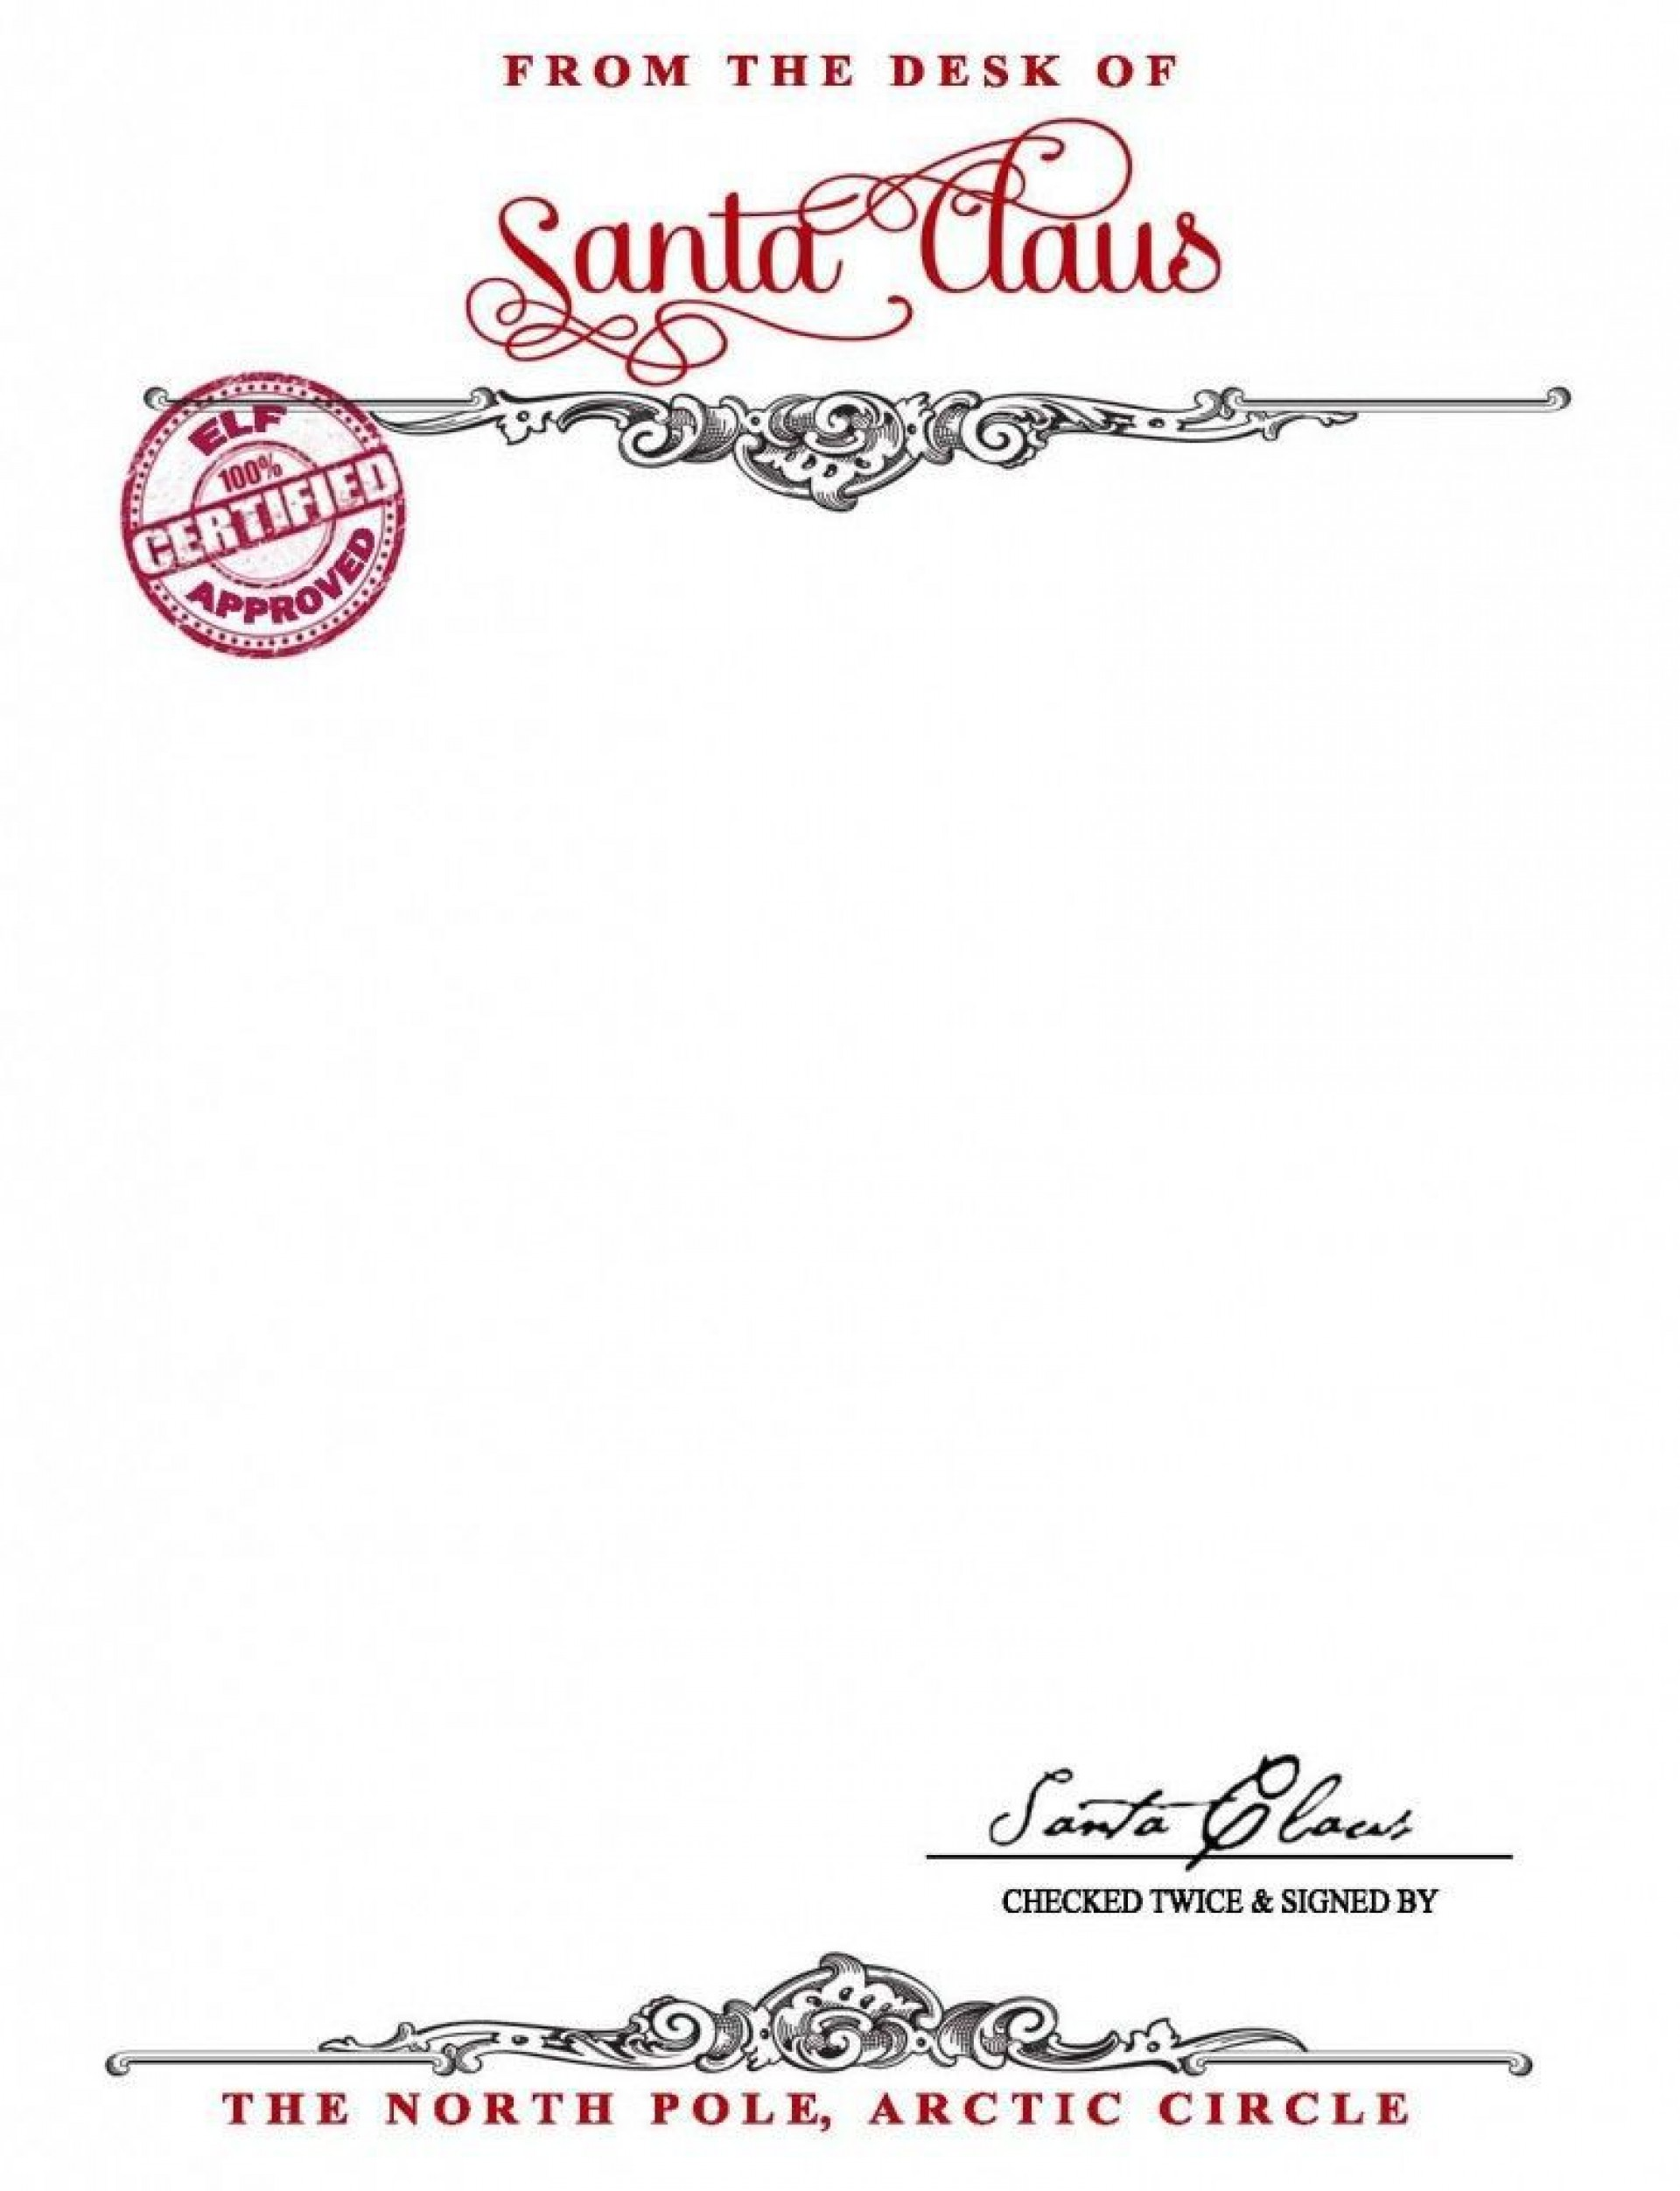 000 Awful Stationary Template For Word High Definition  Lined Stationery Free Download1920